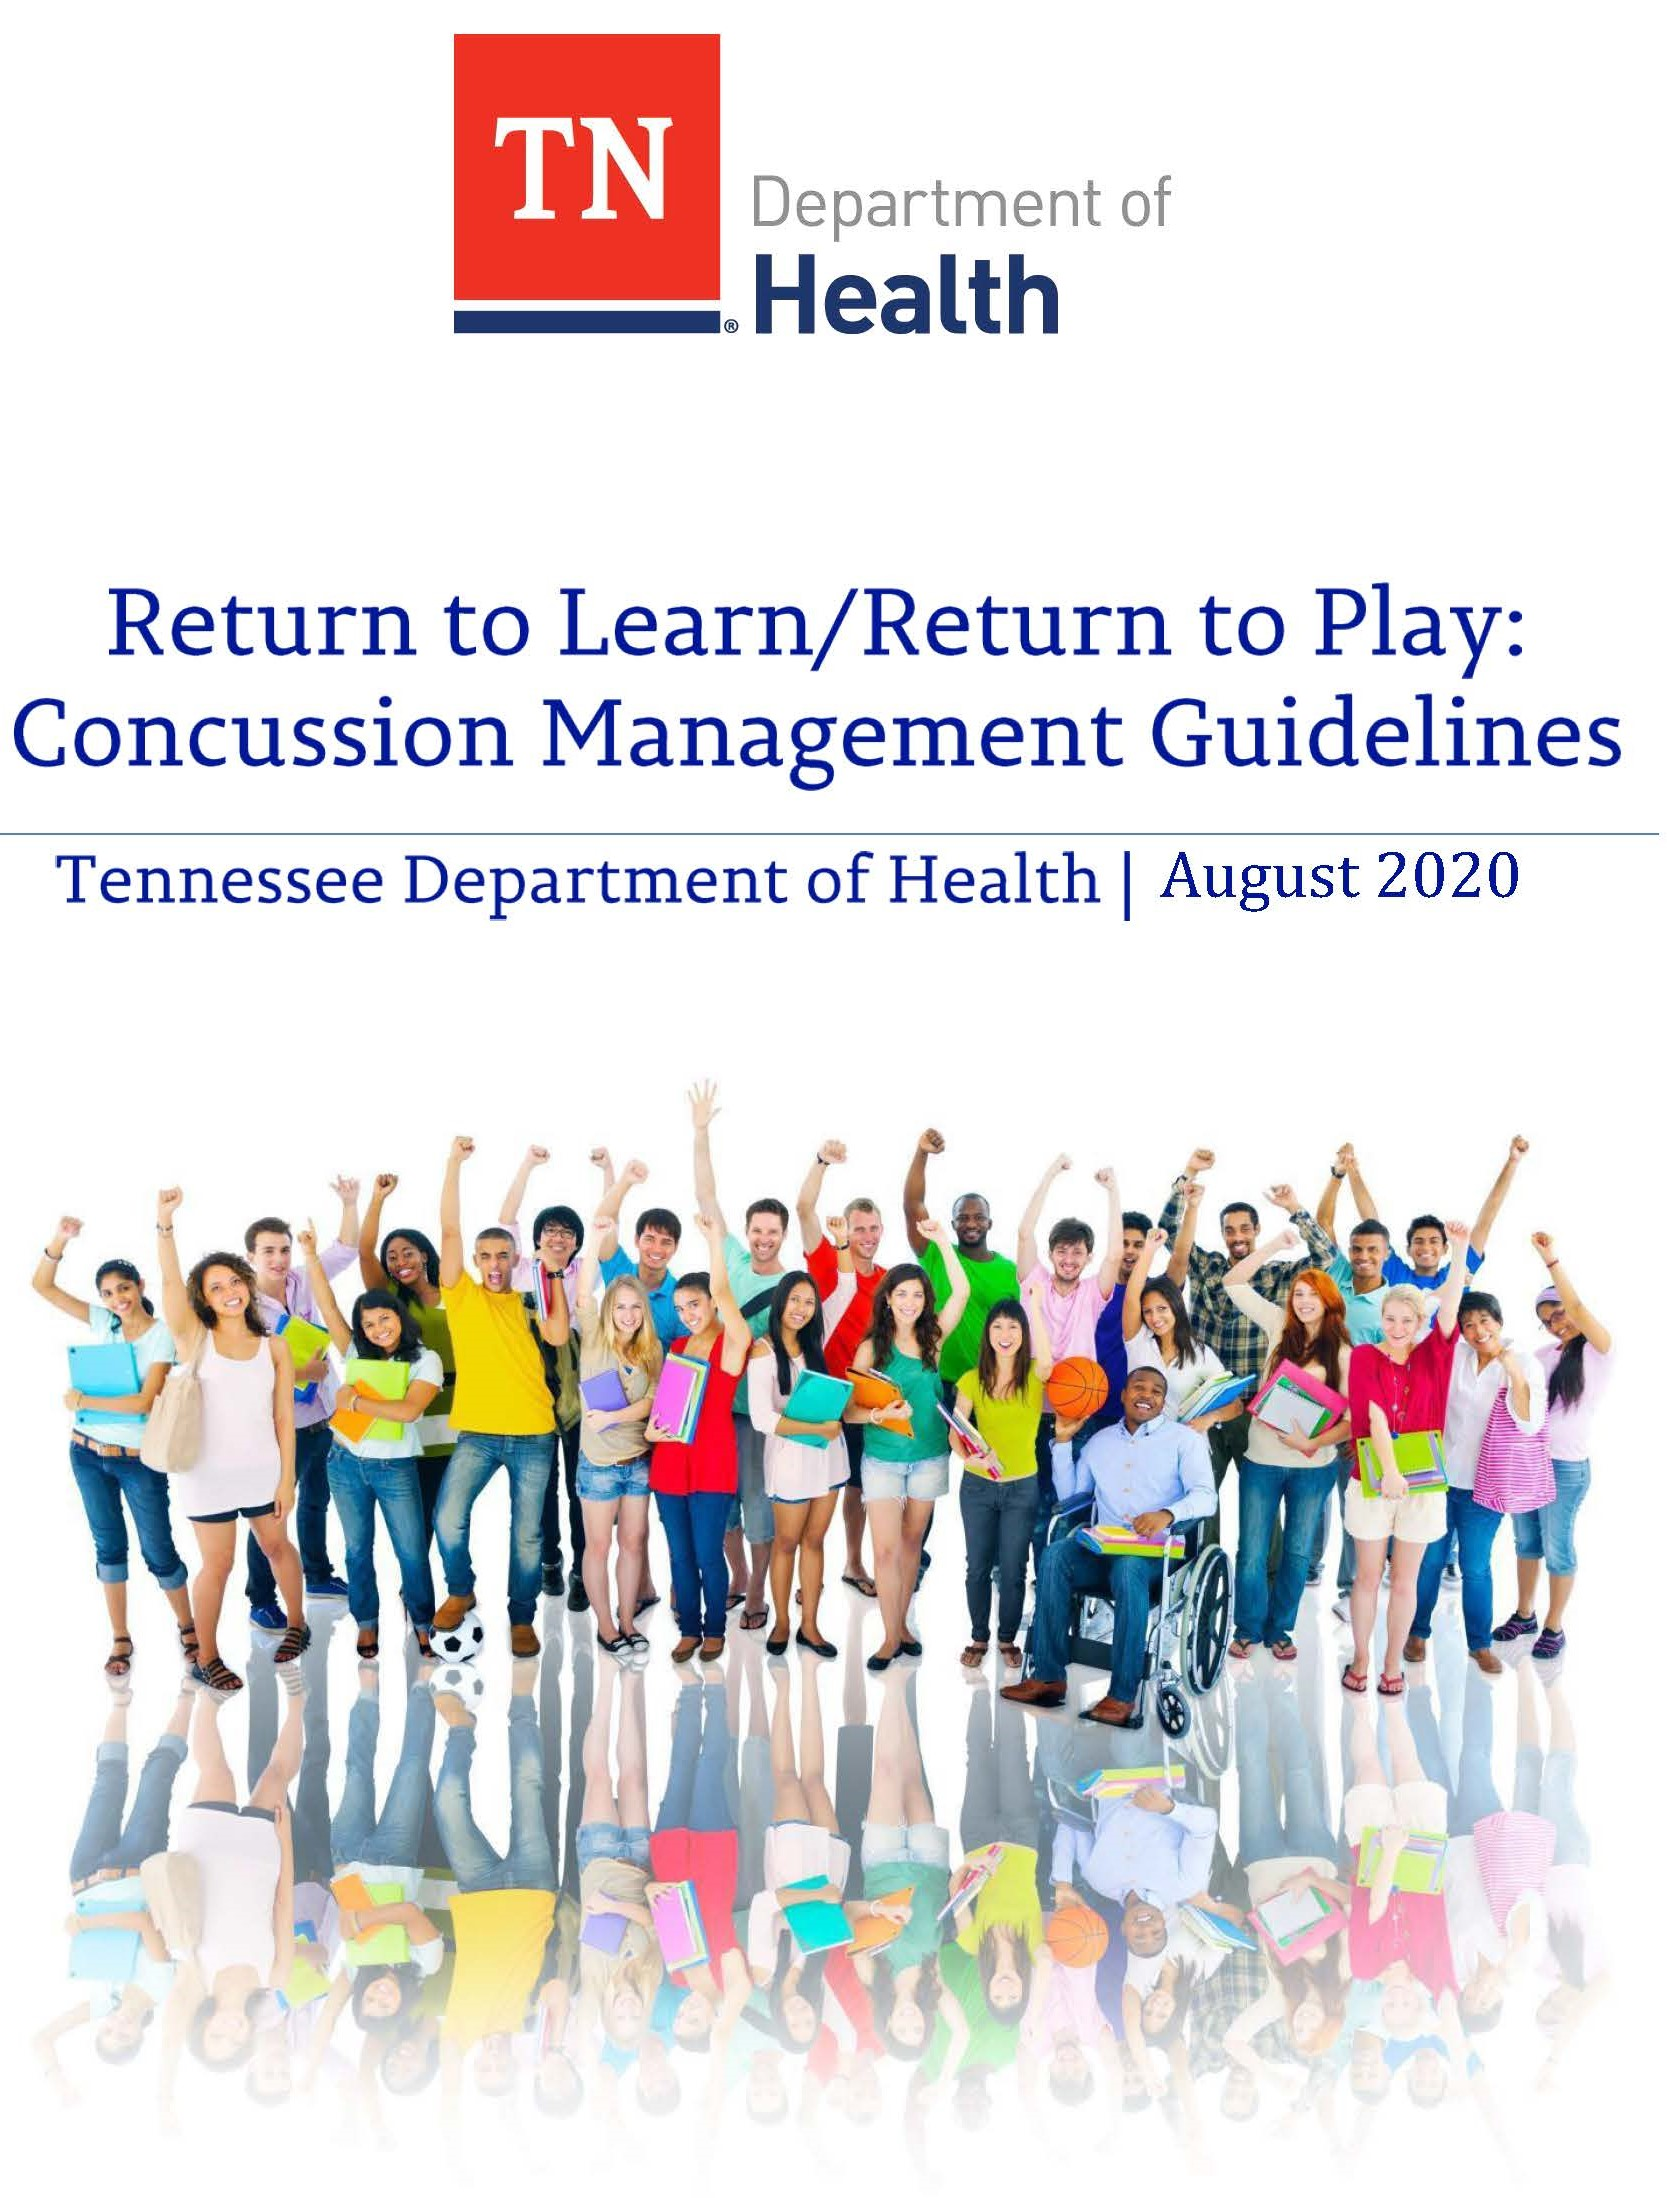 TN Return to Learn-Return to Play Concussion Management Guidelines